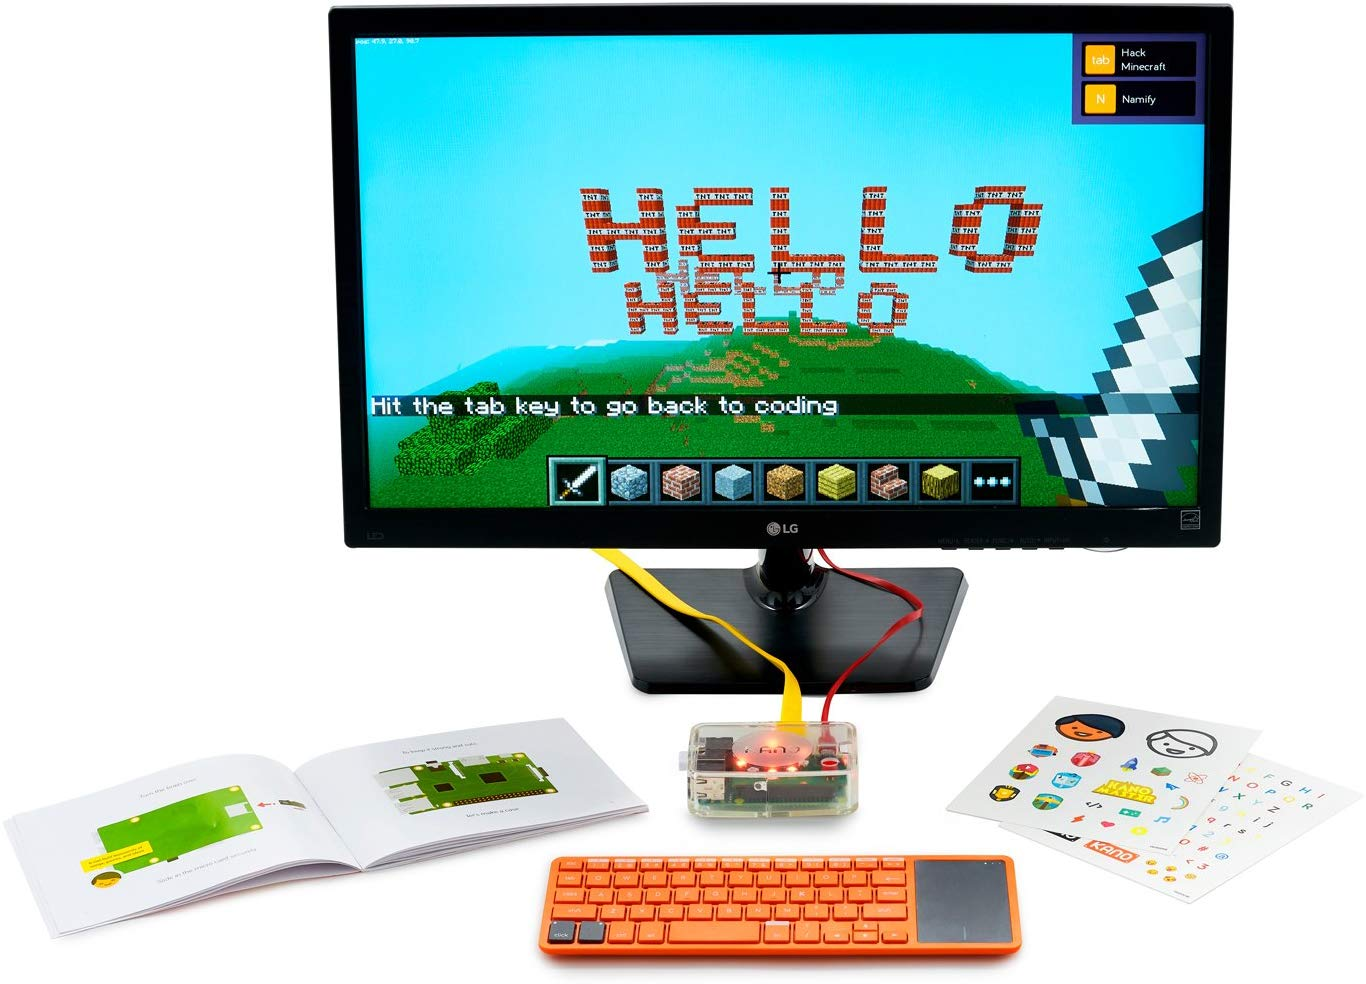 kano computer kit for kids 2019 holiday gift guide